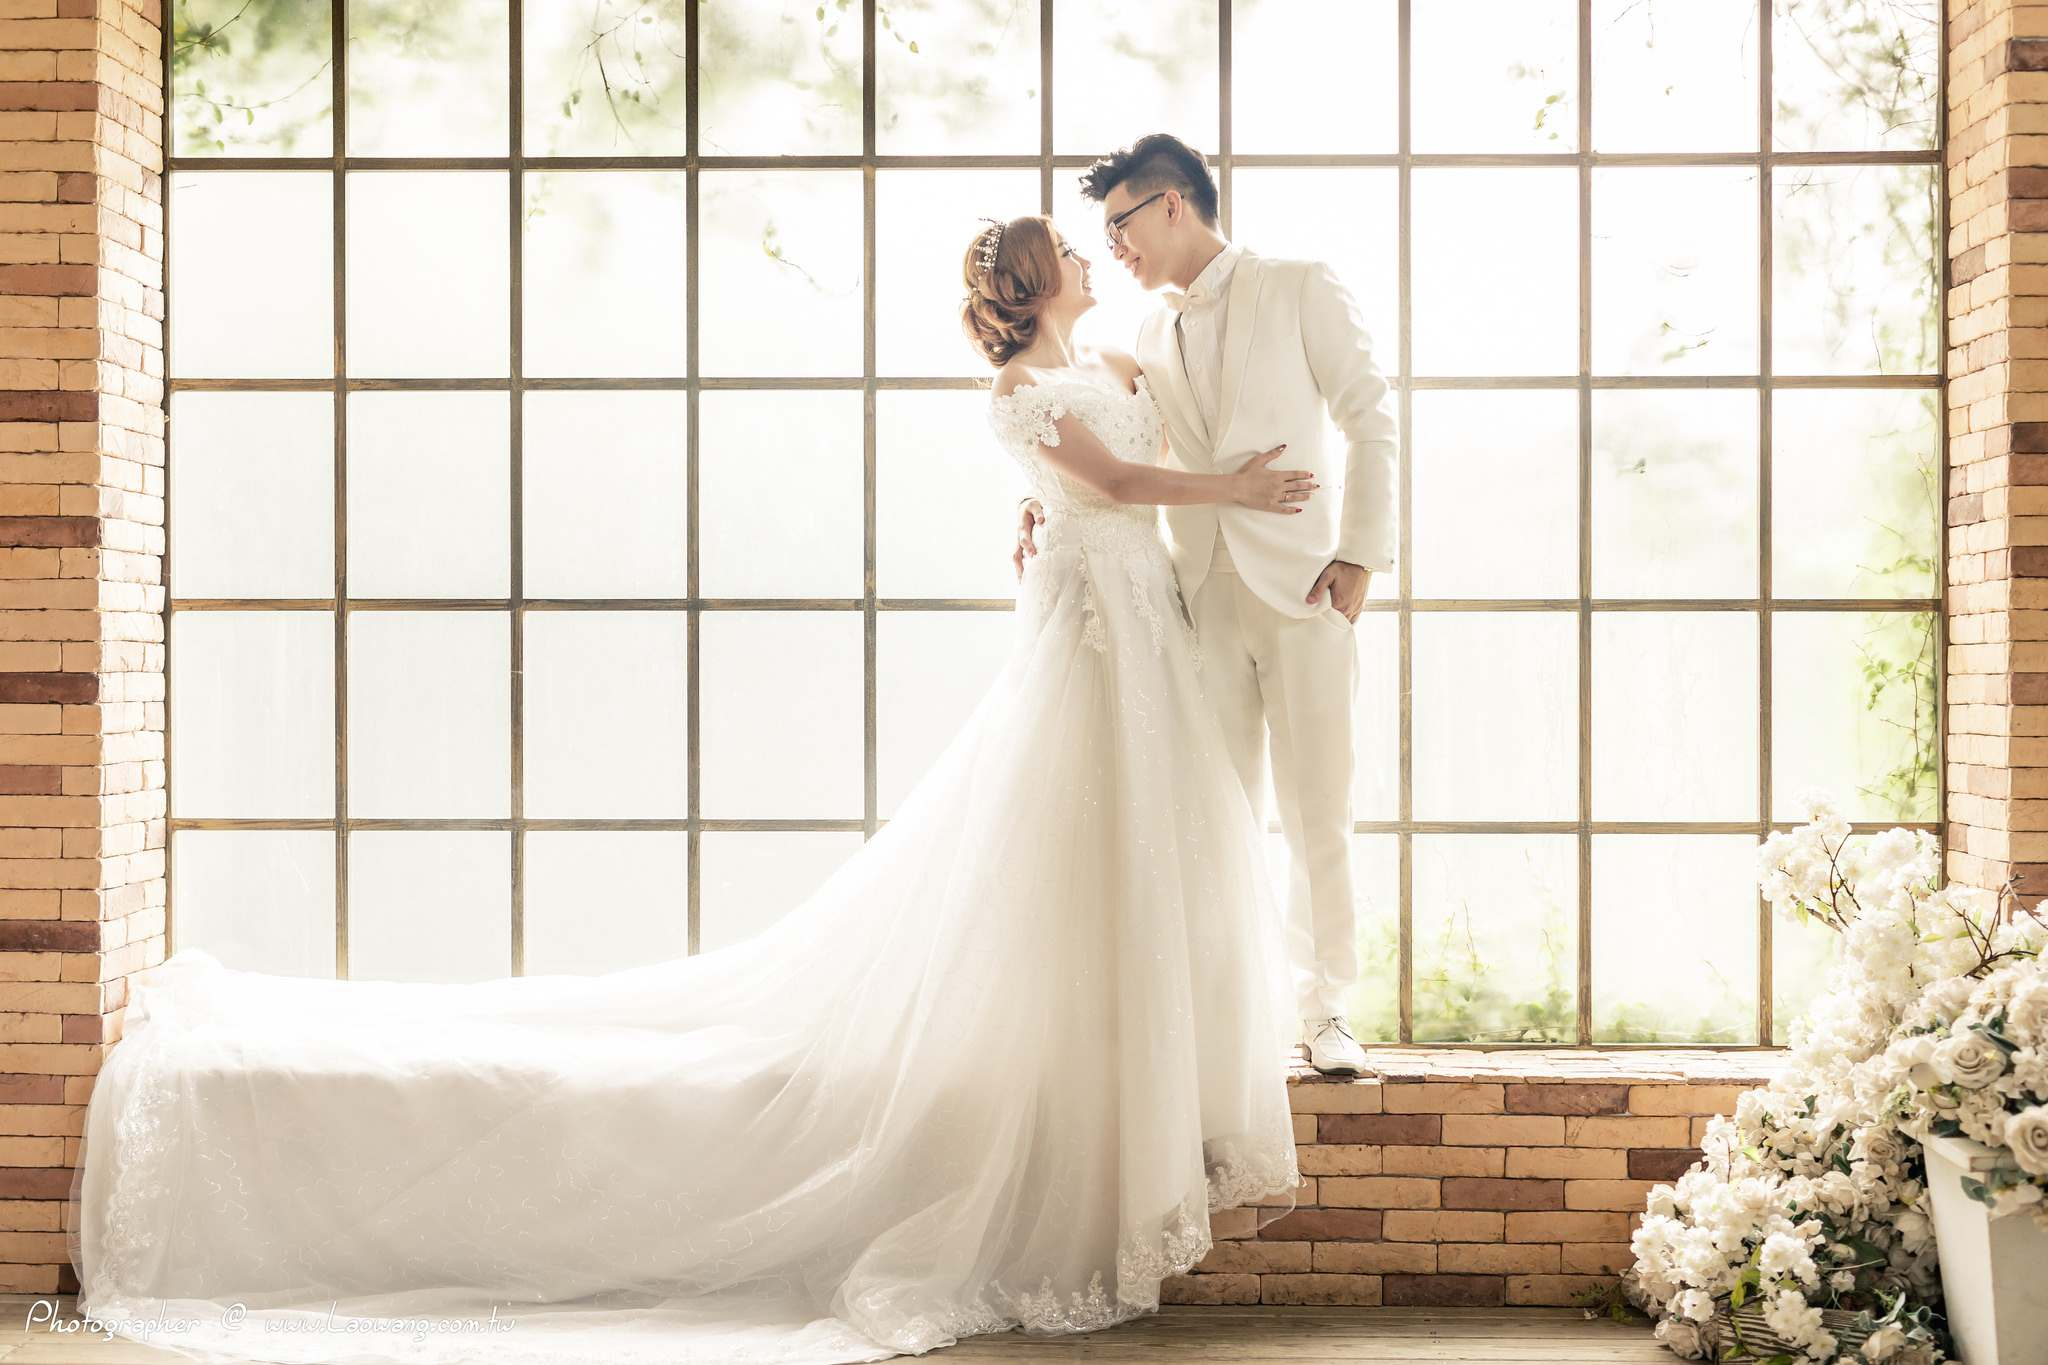 wedding photography16 The Best Wedding Photography Ideas by Lao Wang